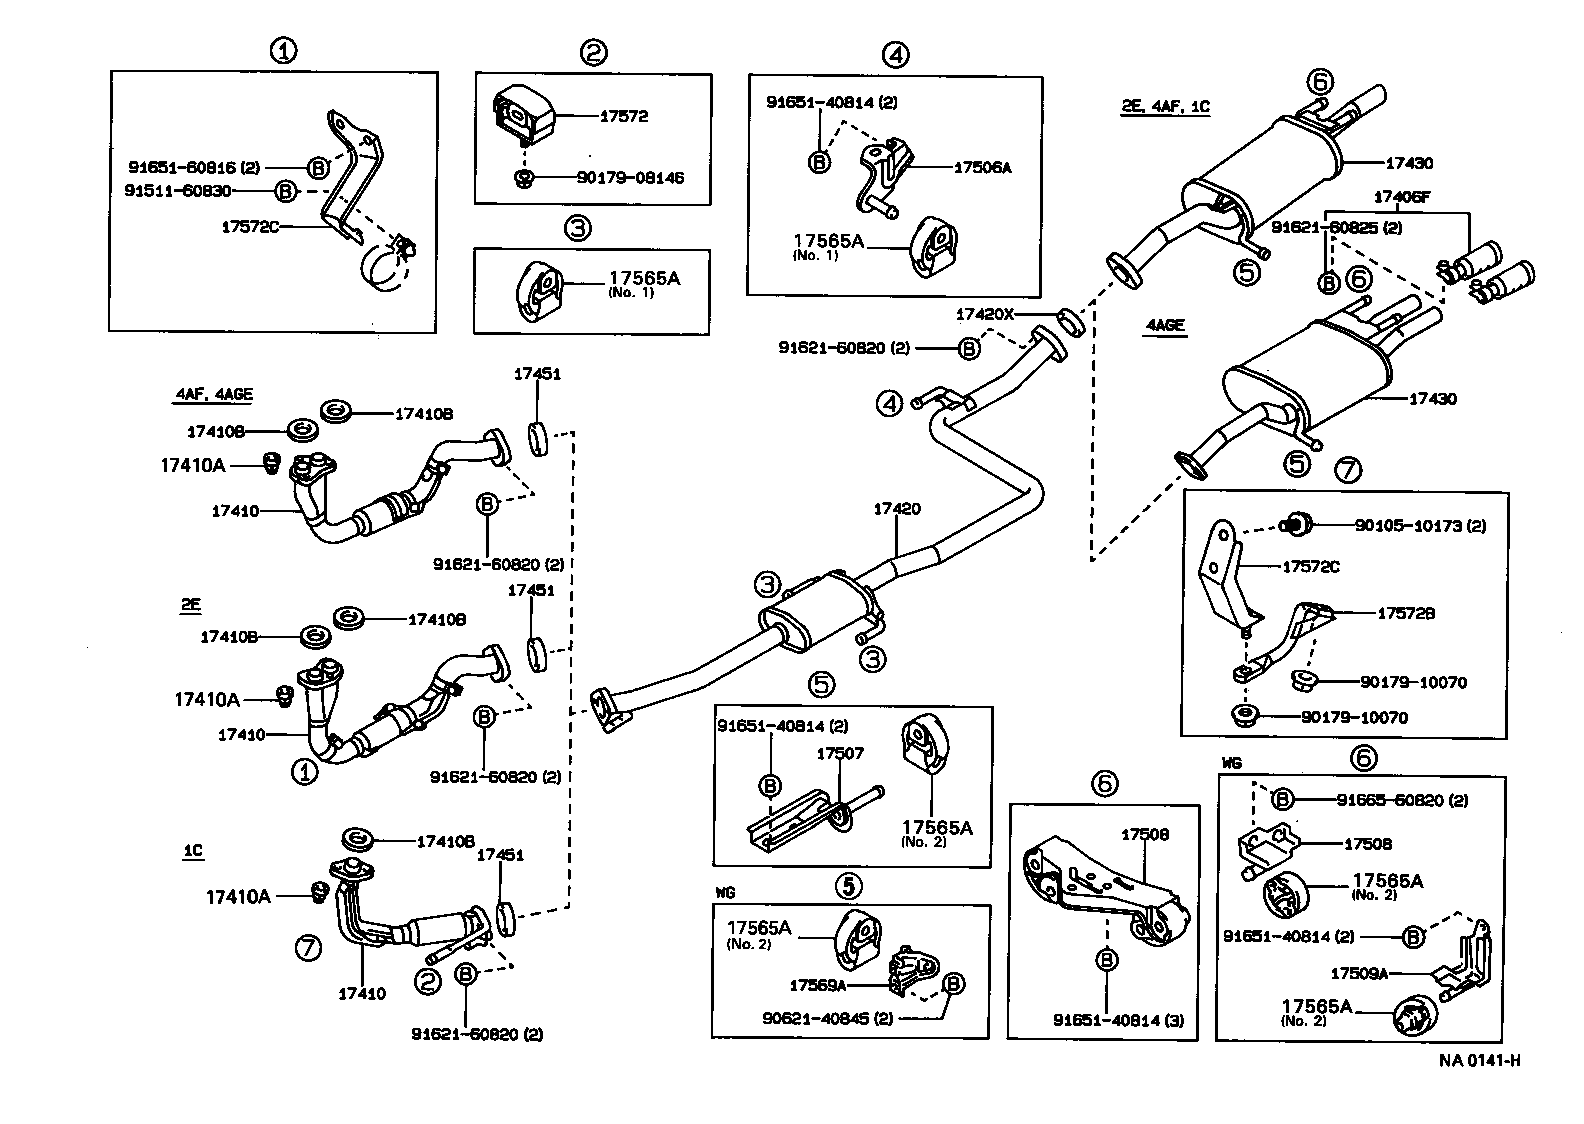 1996 toyota tercel engine diagram  1996  get free image